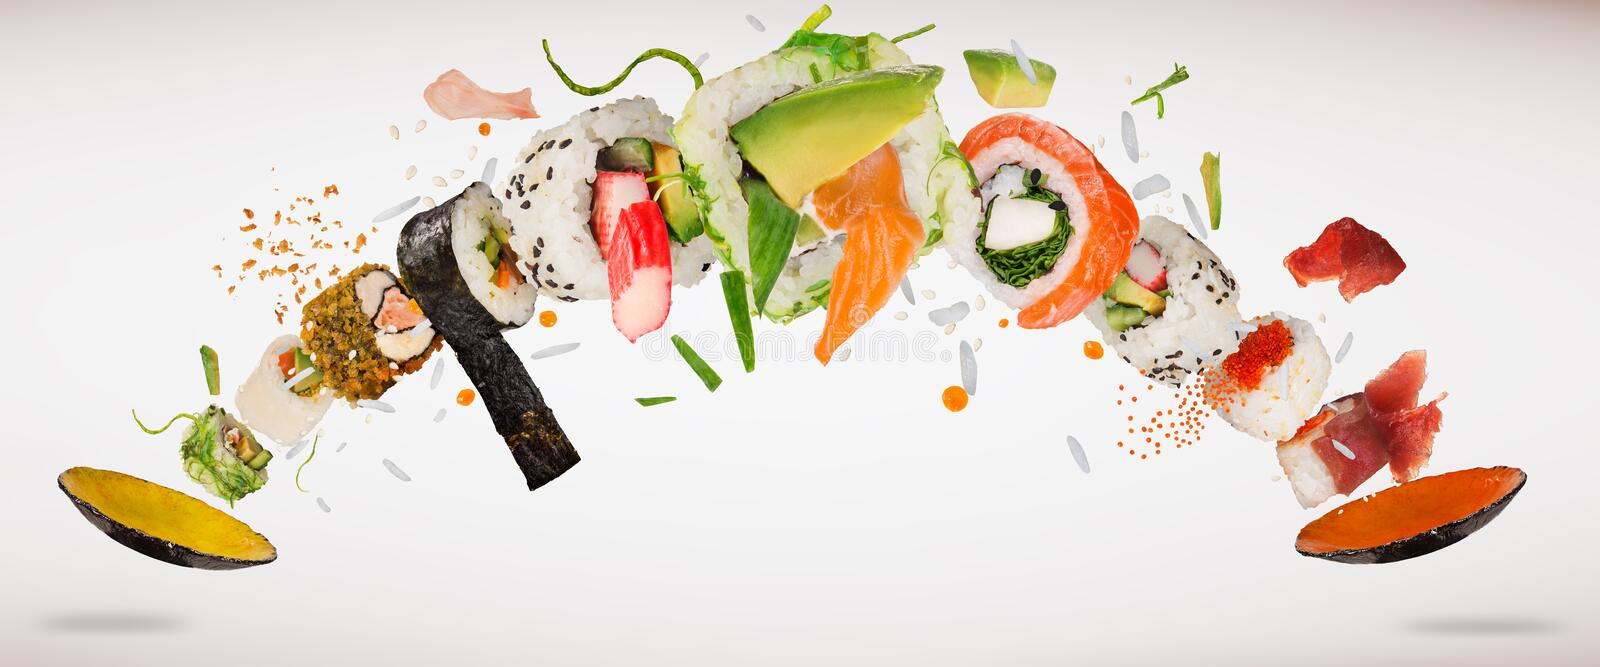 Traditional japanese sushi pieces on rustic concrete background. stock illustration